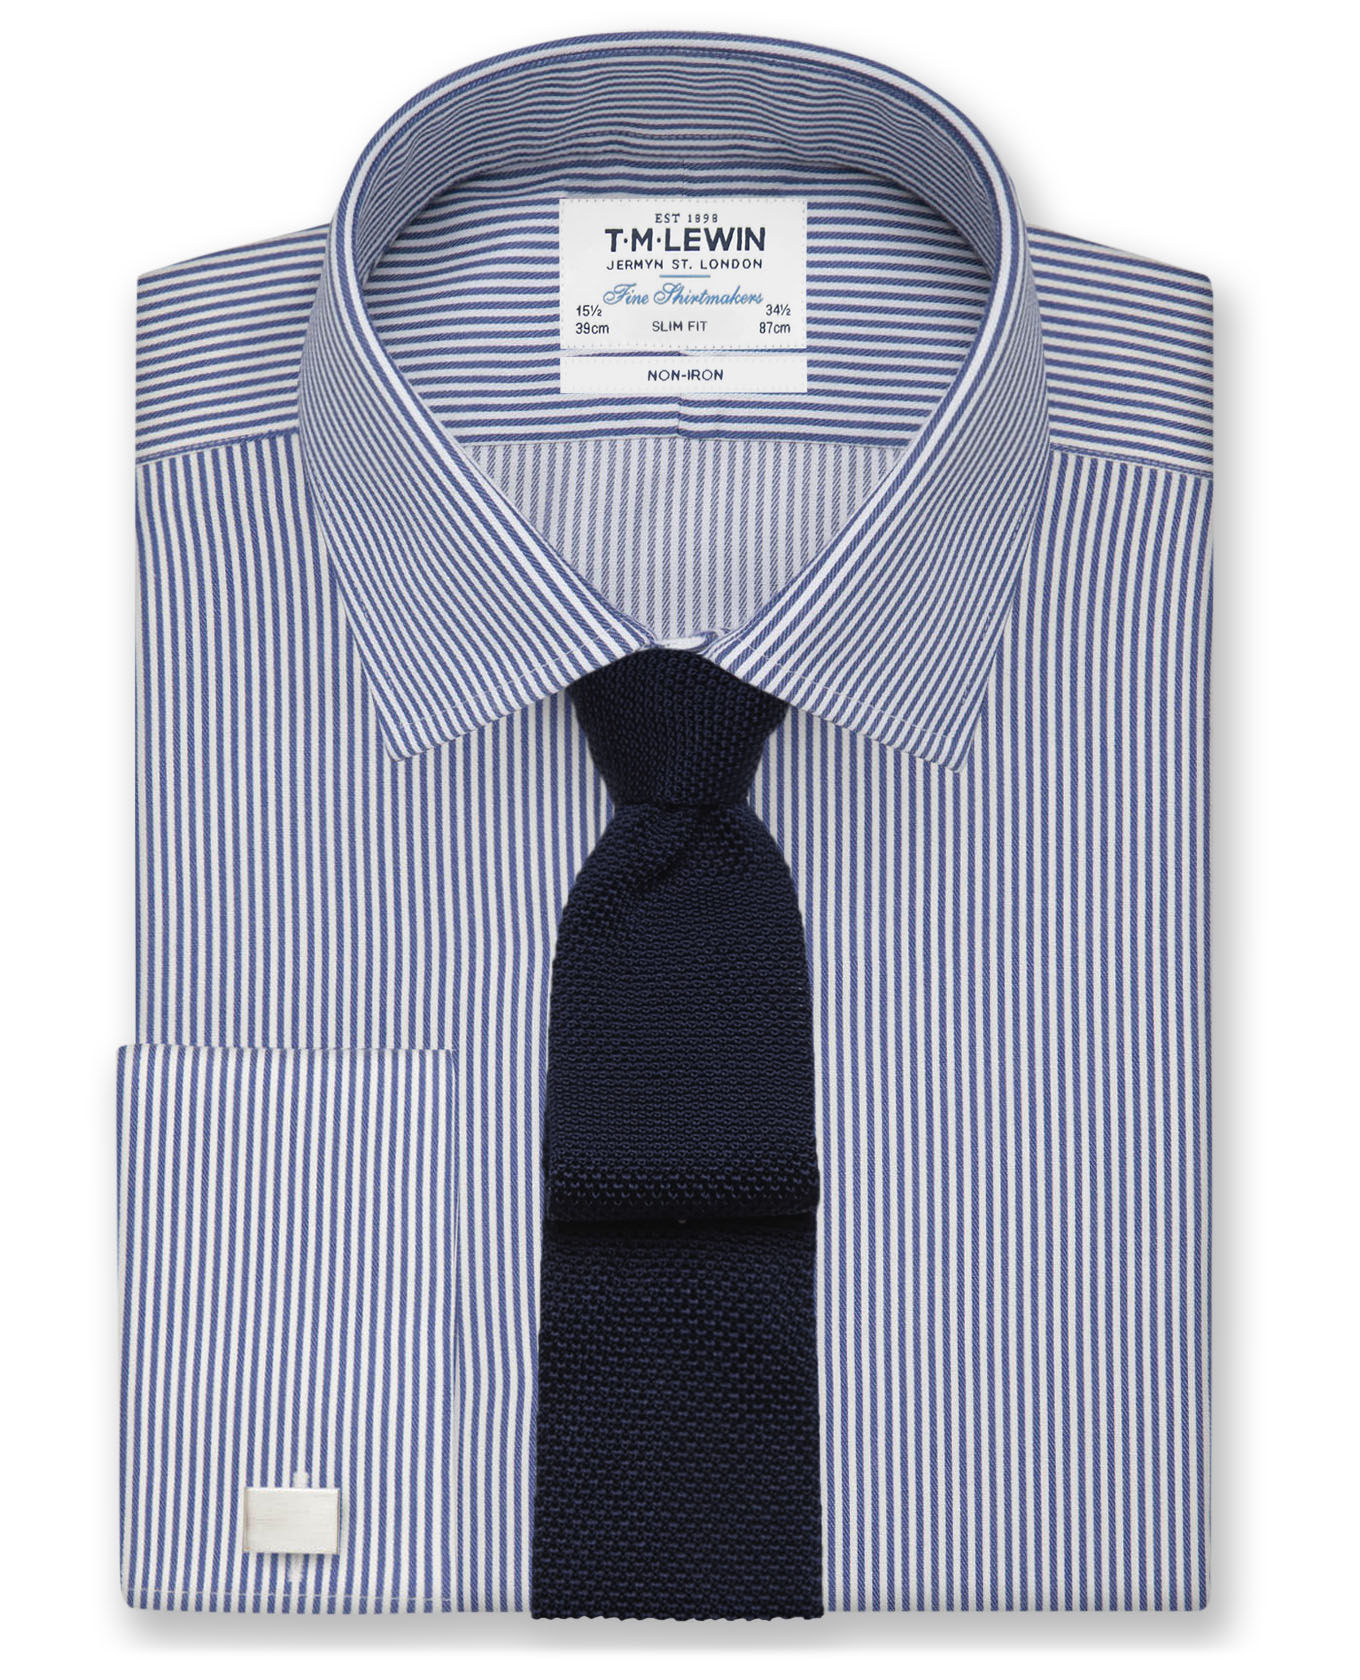 T.M.Lewin Non-Iron Navy Bengal Stripe Slim Fit Shirt